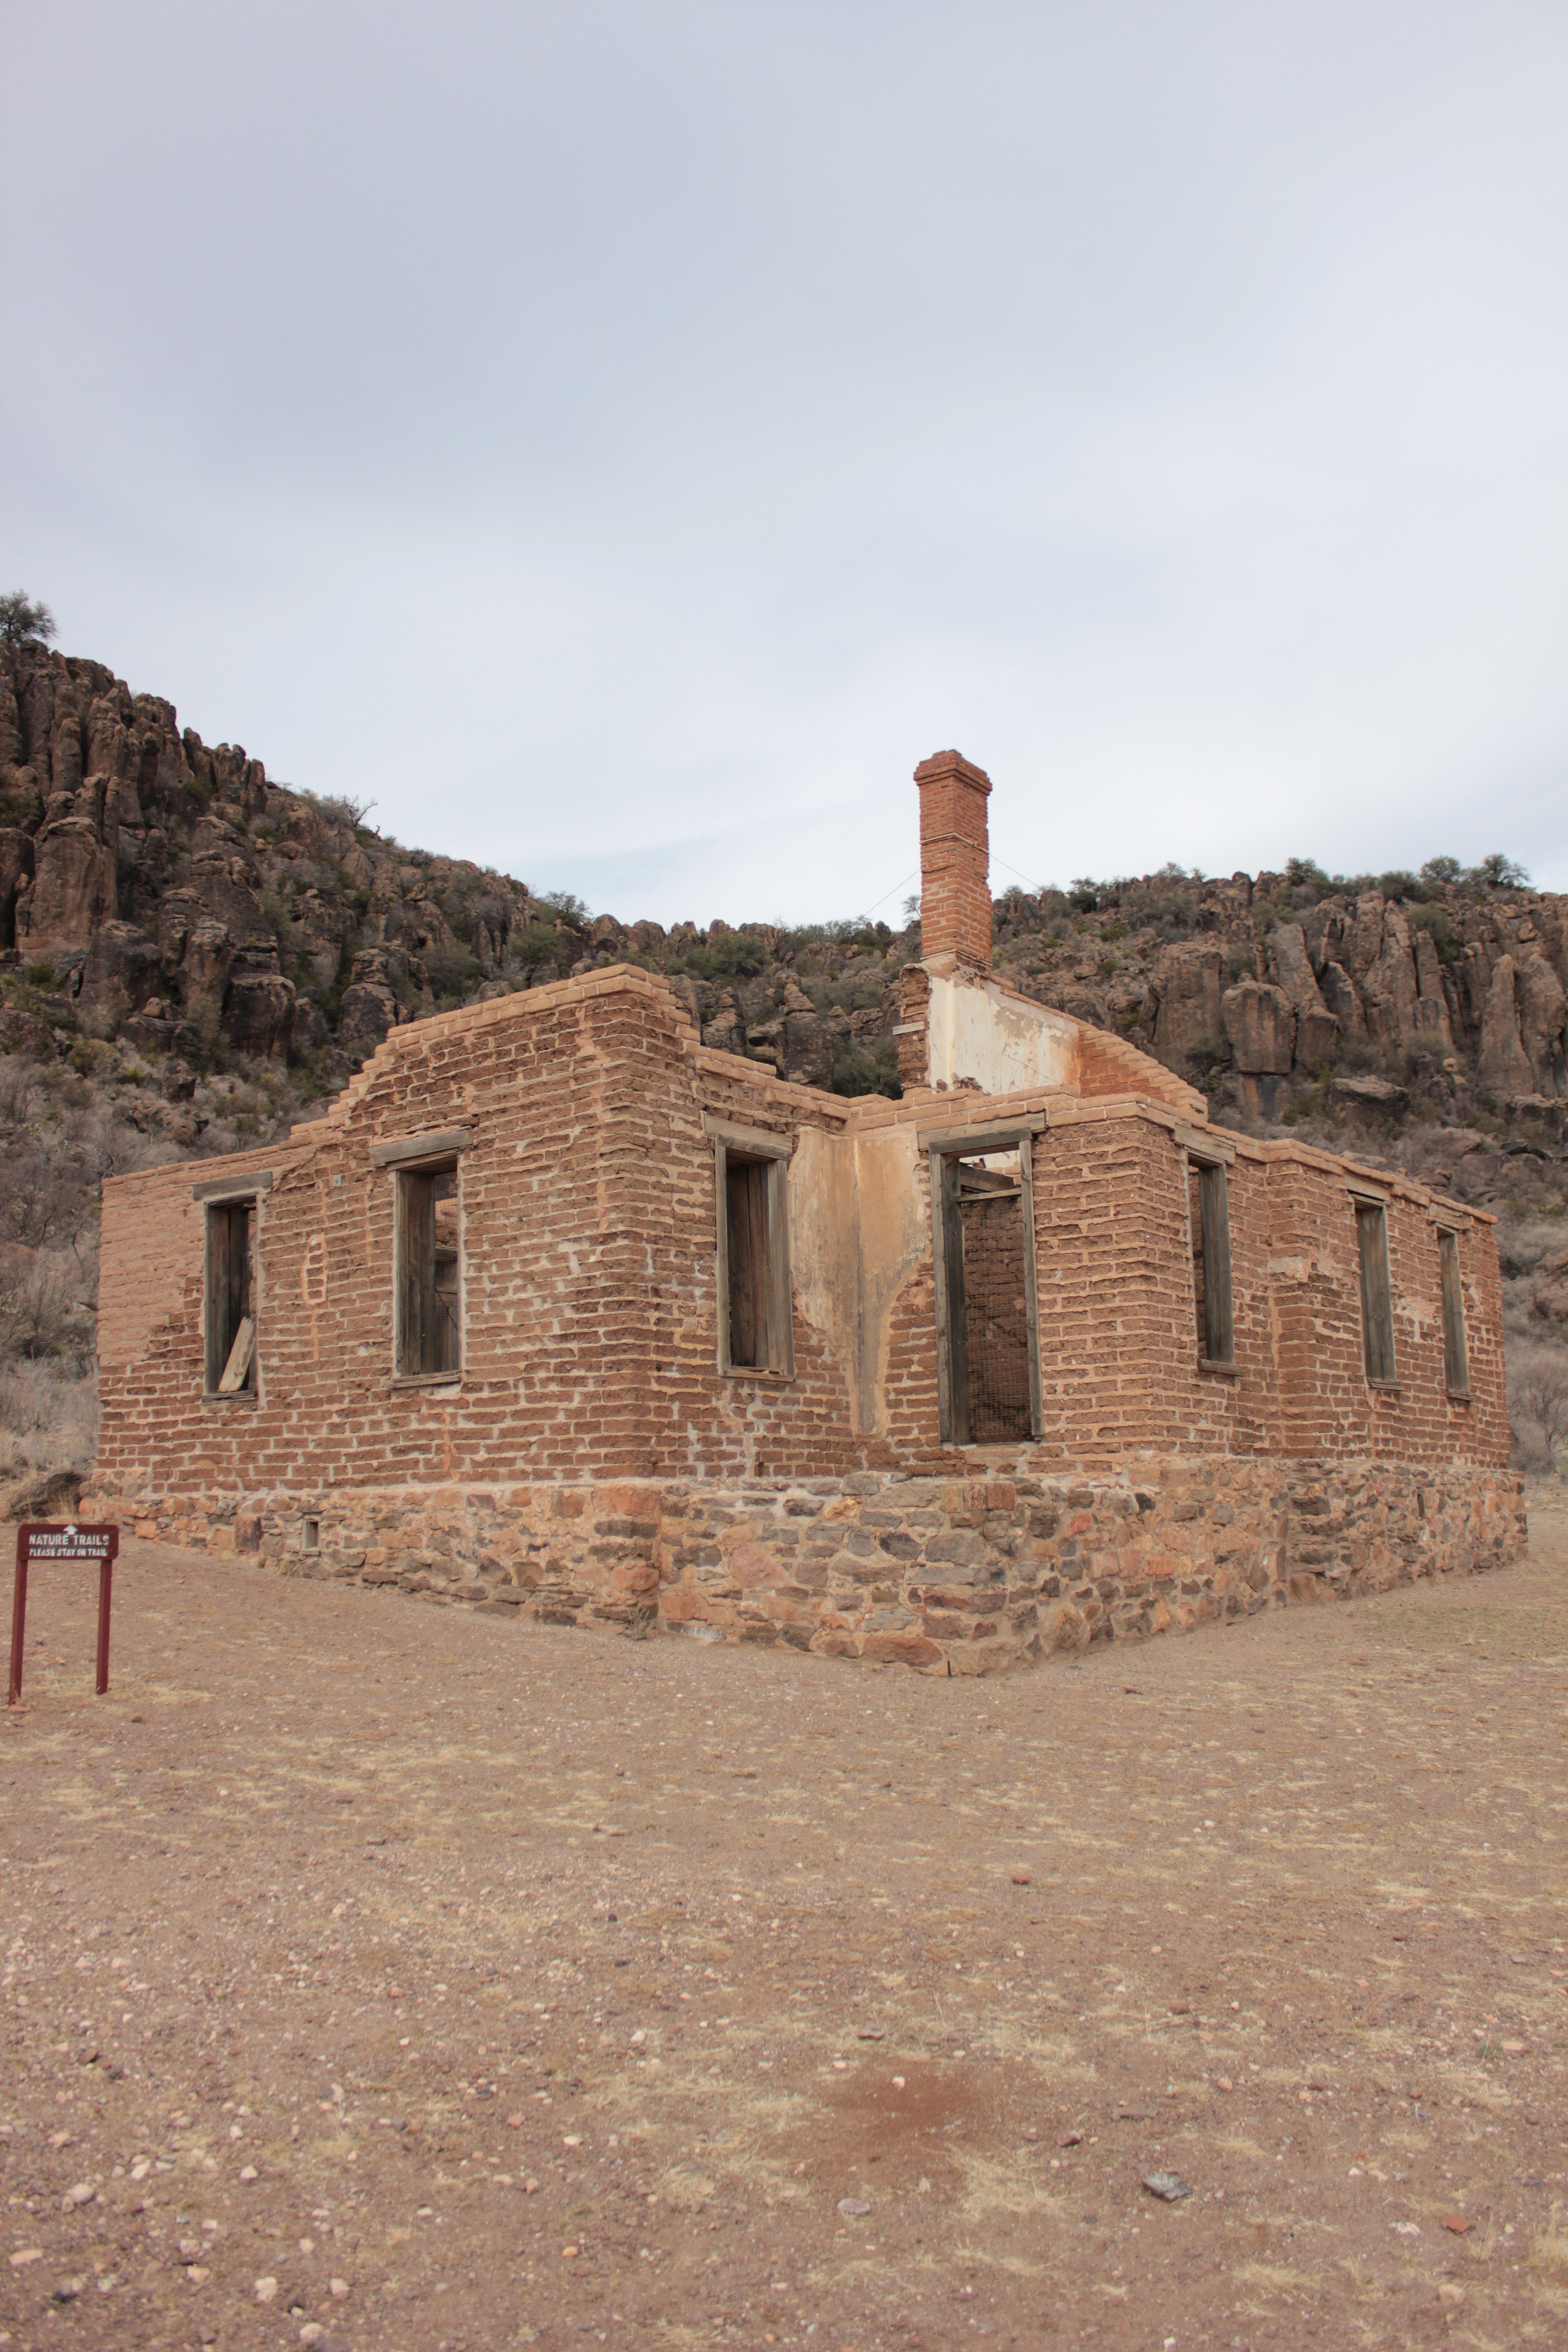 fort davis dating The quadrangle at joint base san antonio-fort sam  is an iconic structure rich in history dating back to the end  jacqueline davis, the fort sam houston.